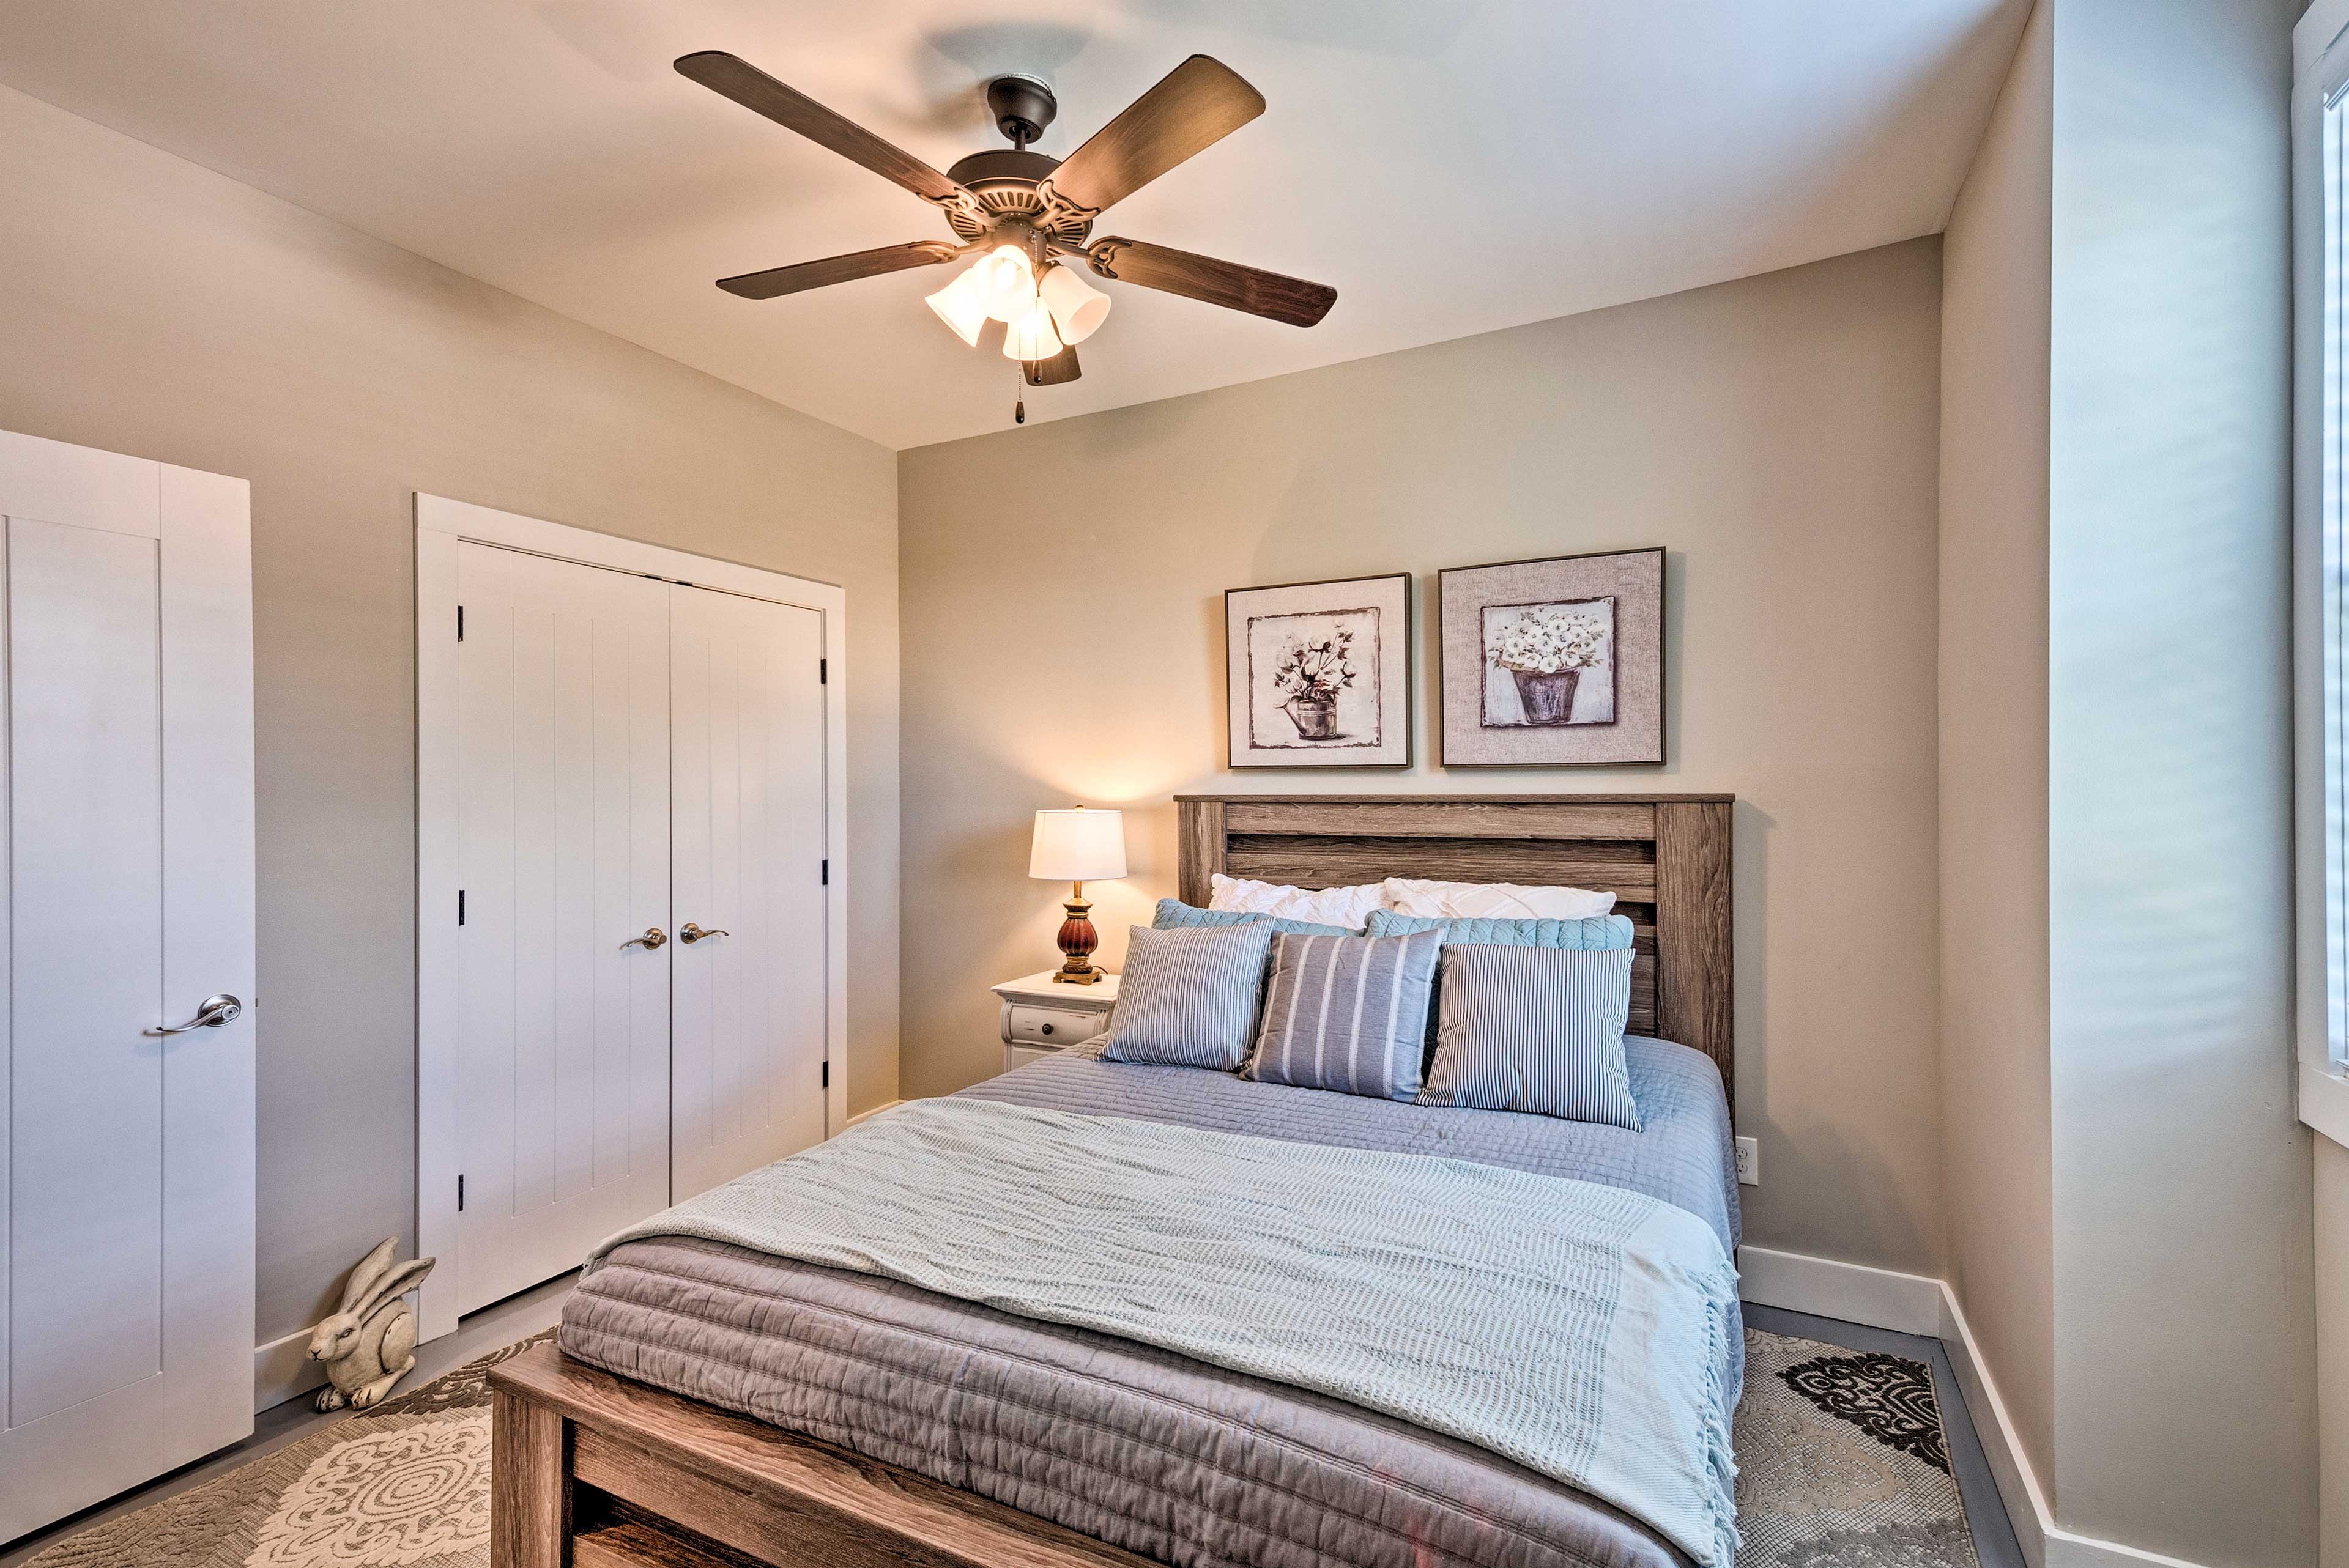 Rustic decor, a ceiling fan, and a closet complete this room.